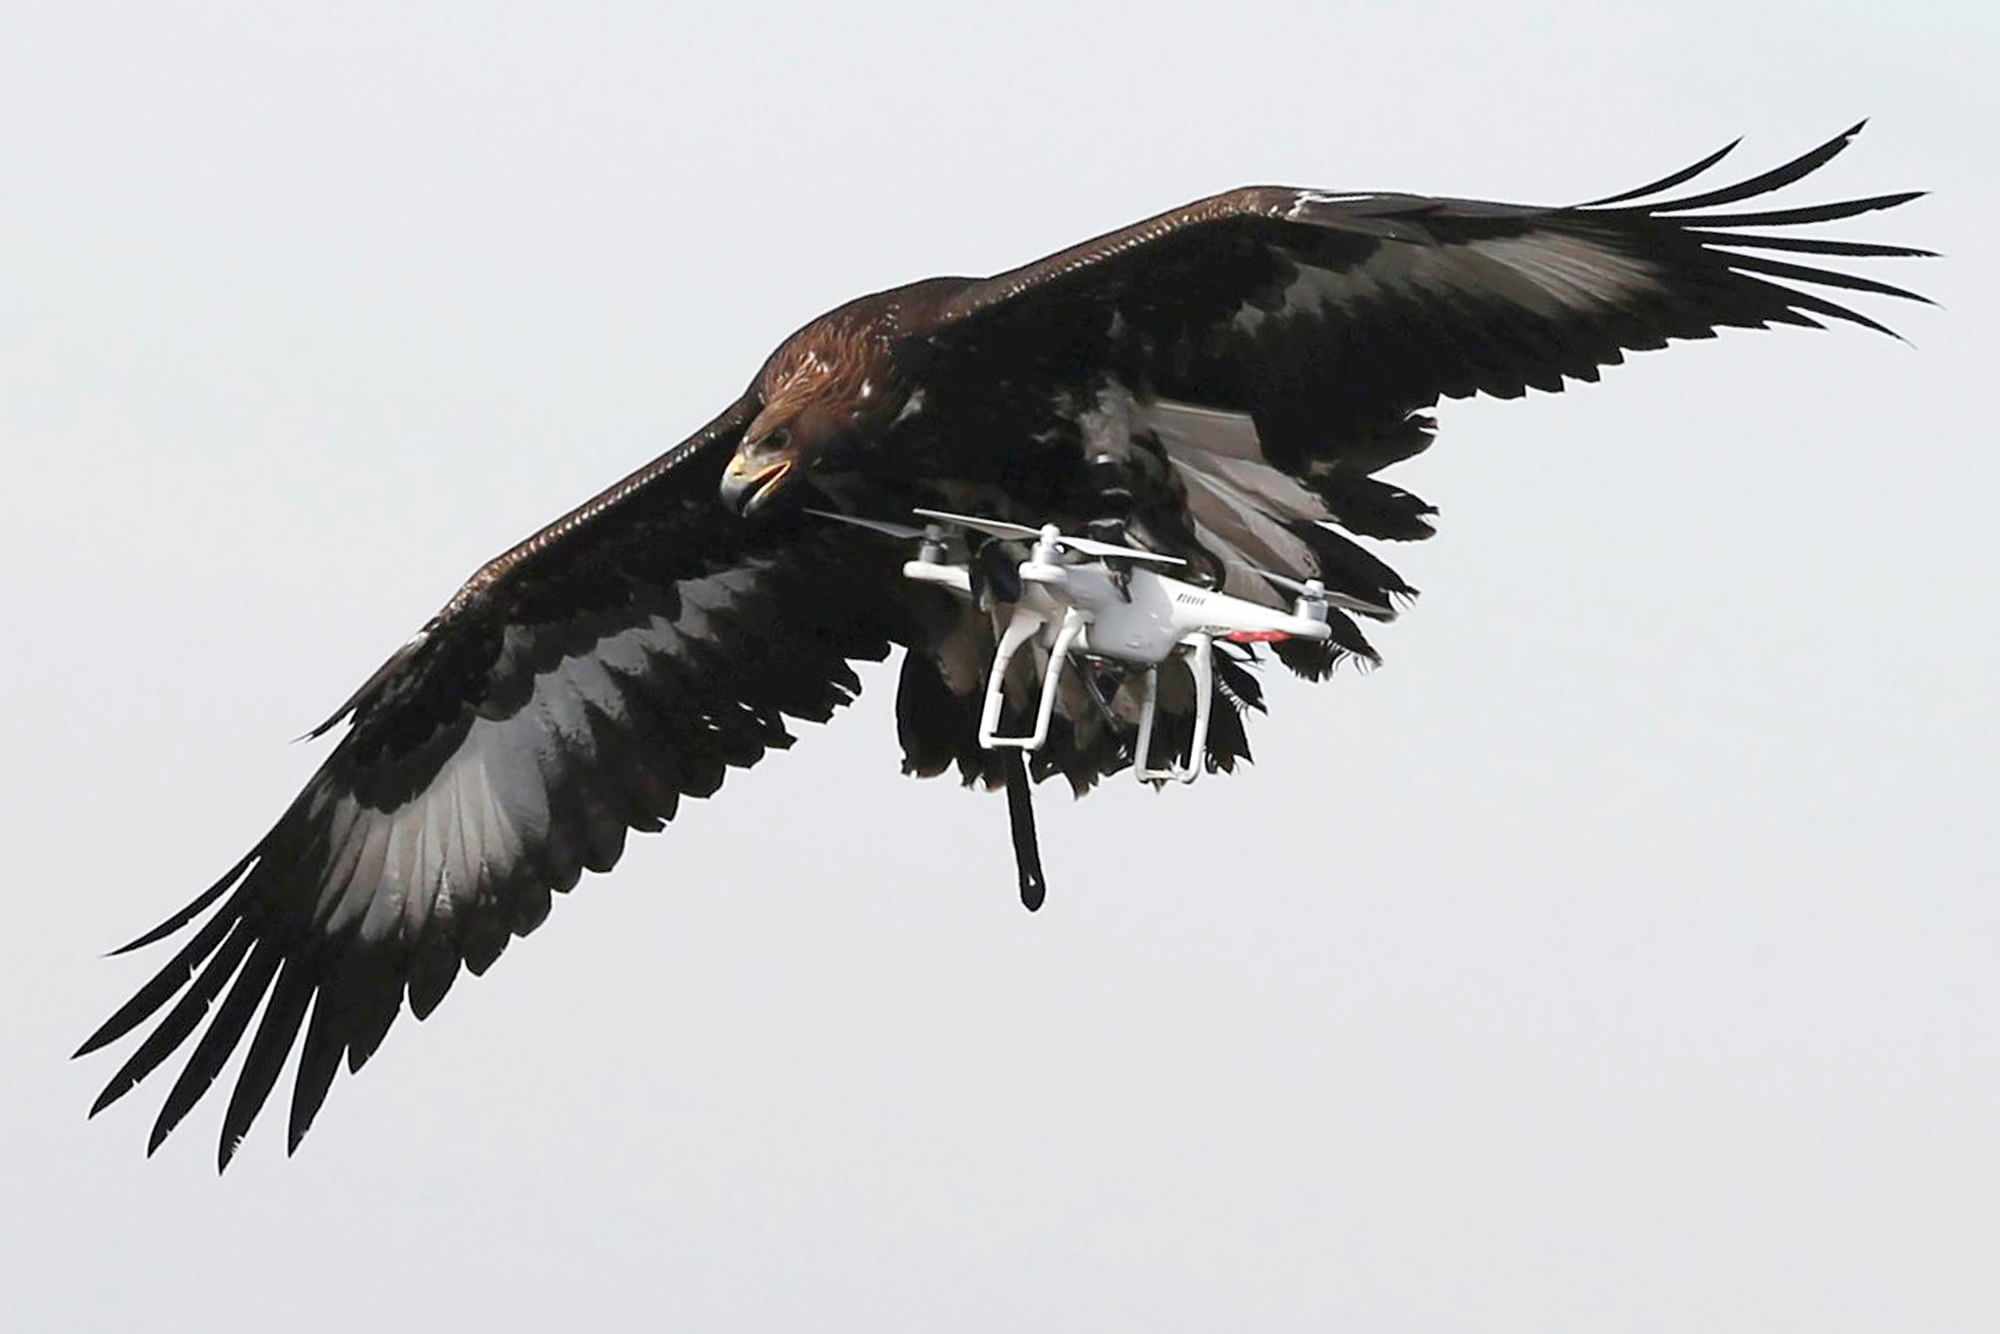 Eagle Vs Drone Bird Of Prey Attacks French Air Force Vehicle Cgtn